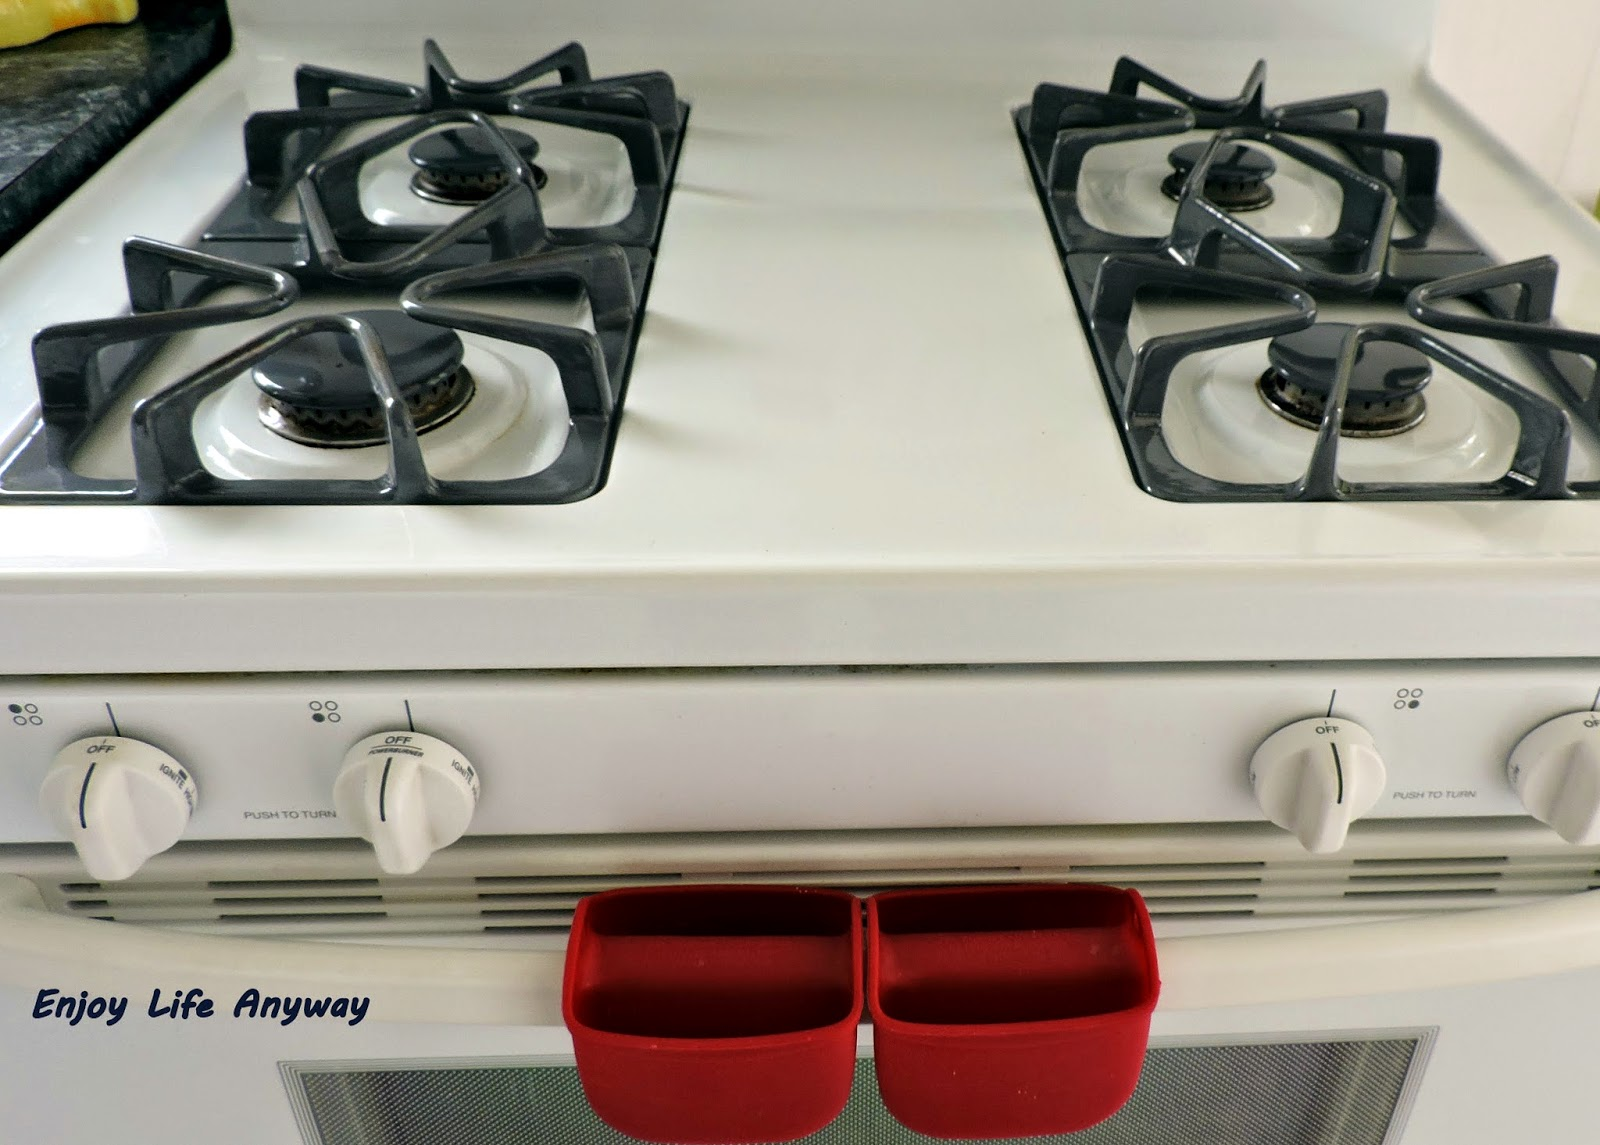 Enjoy Life Anyway The Easy Way To Clean Stove Burner